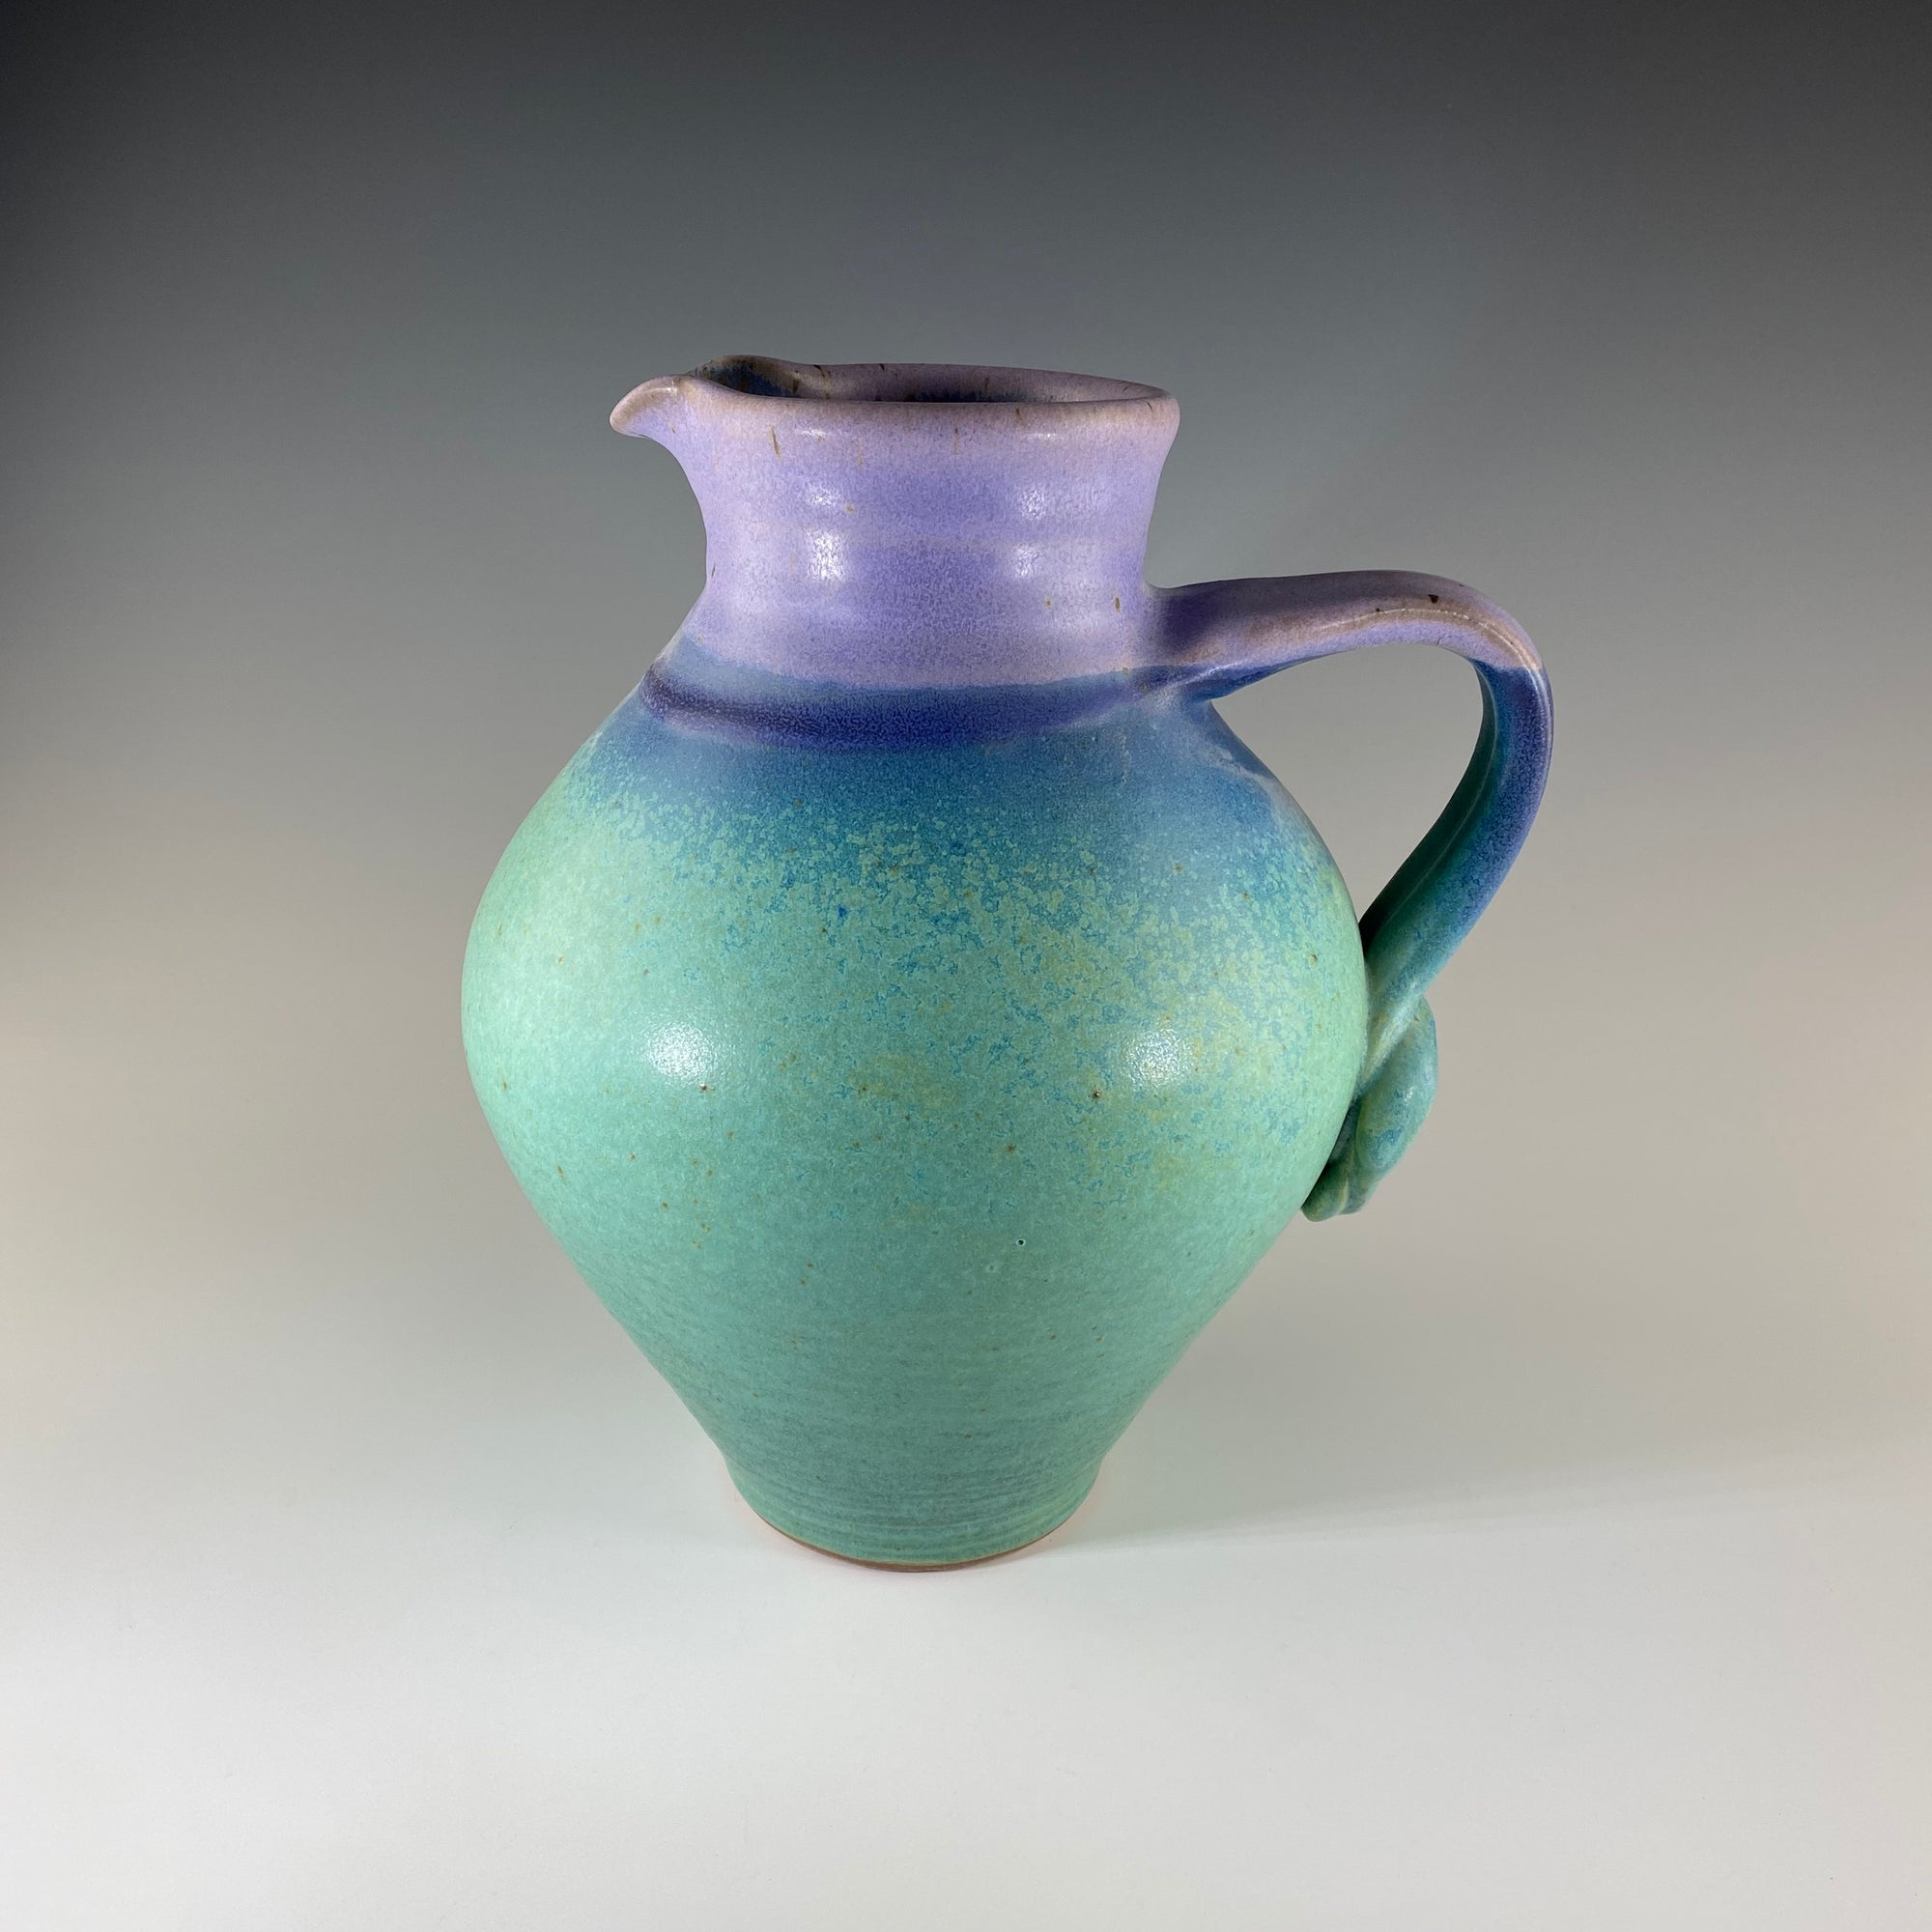 Large Round Pitcher in Turquoise & Lavender - Heart of the Home PA